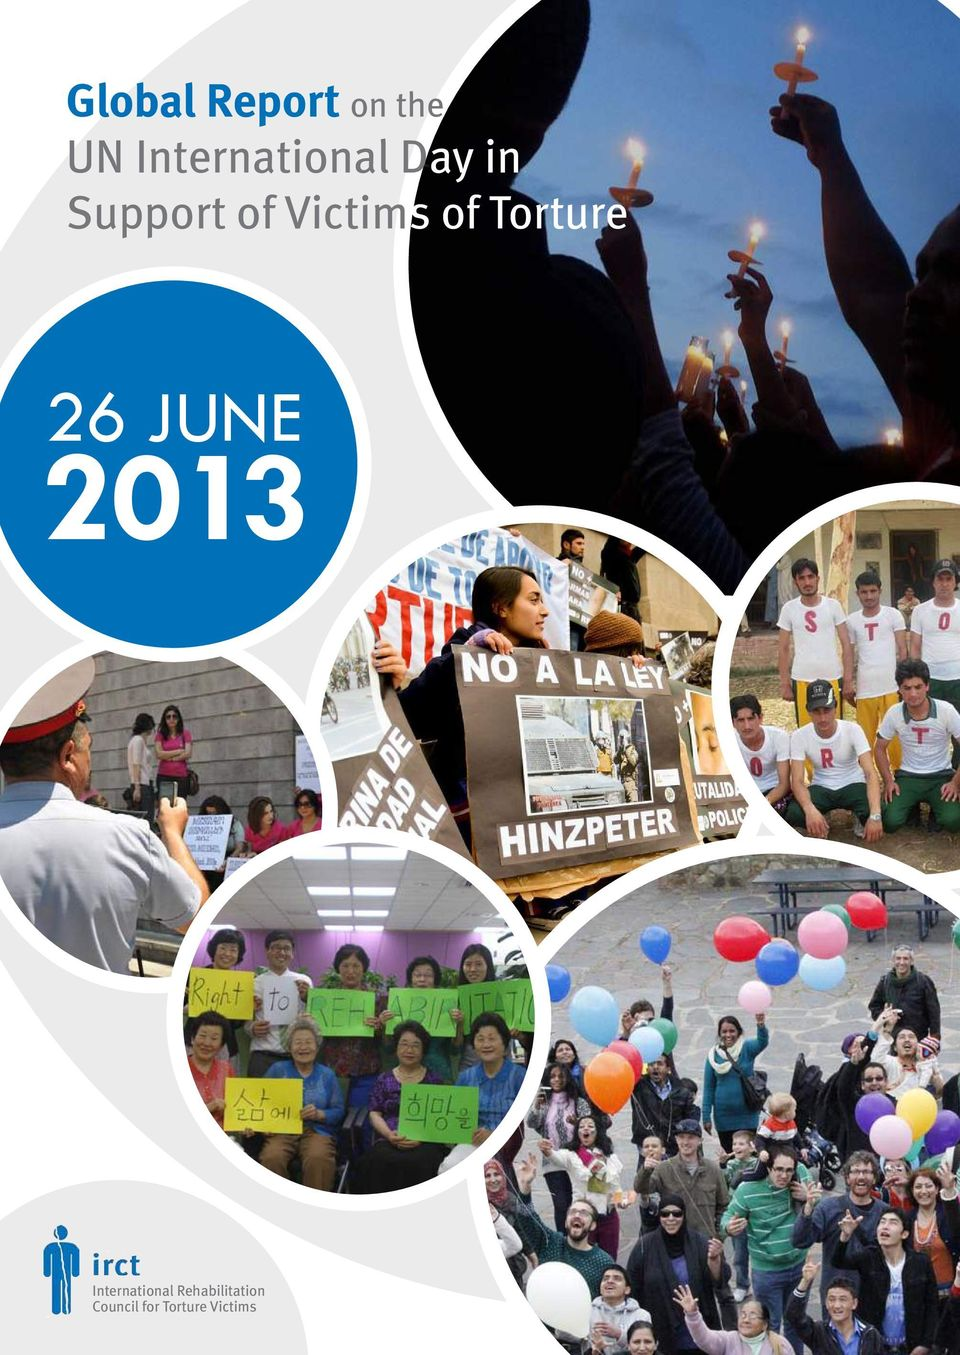 Victims of Torture 26 JUNE 2013